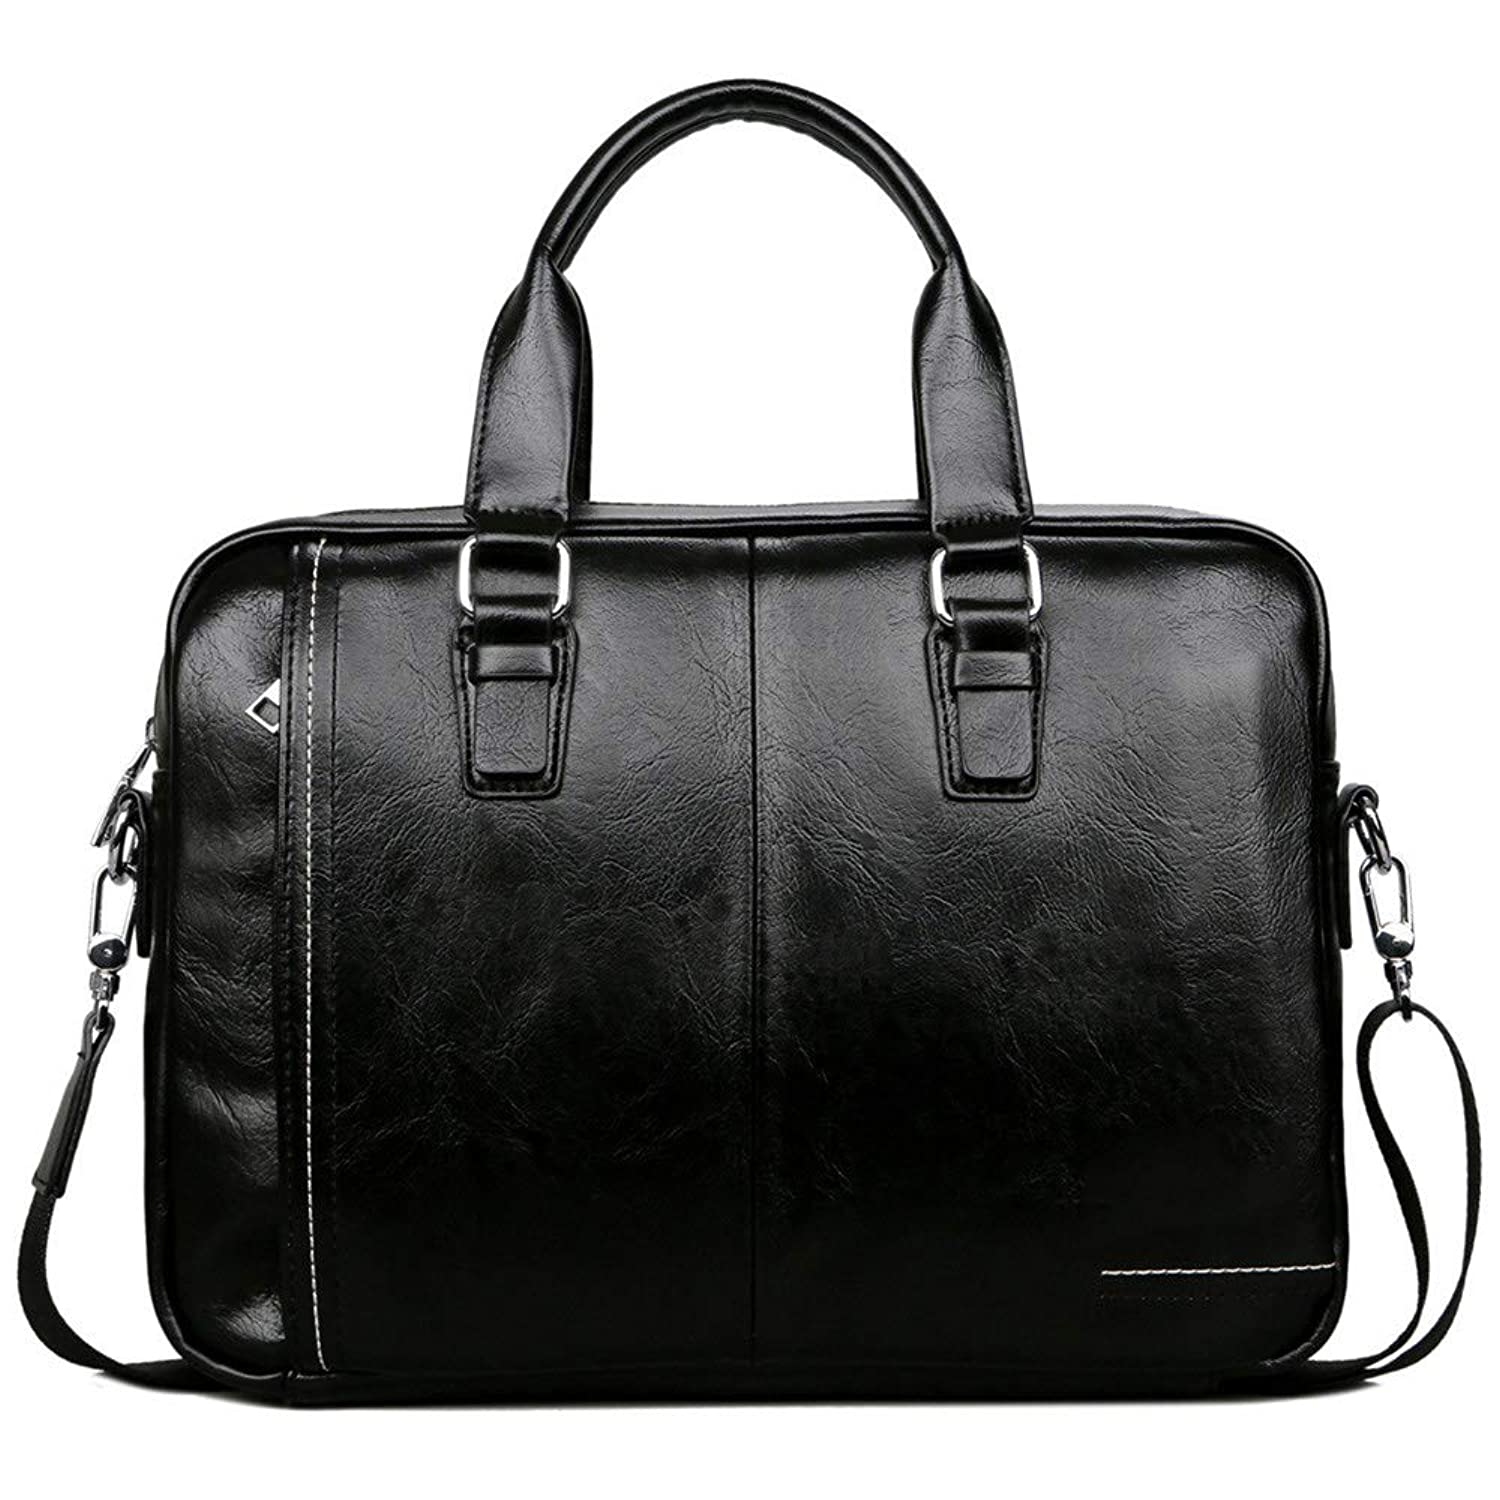 GAOCAN-BG Convenient PU Leather Laptop Bag with Handle and Zip Pocket Men's Briefcase Business Tote Male Travel Bag